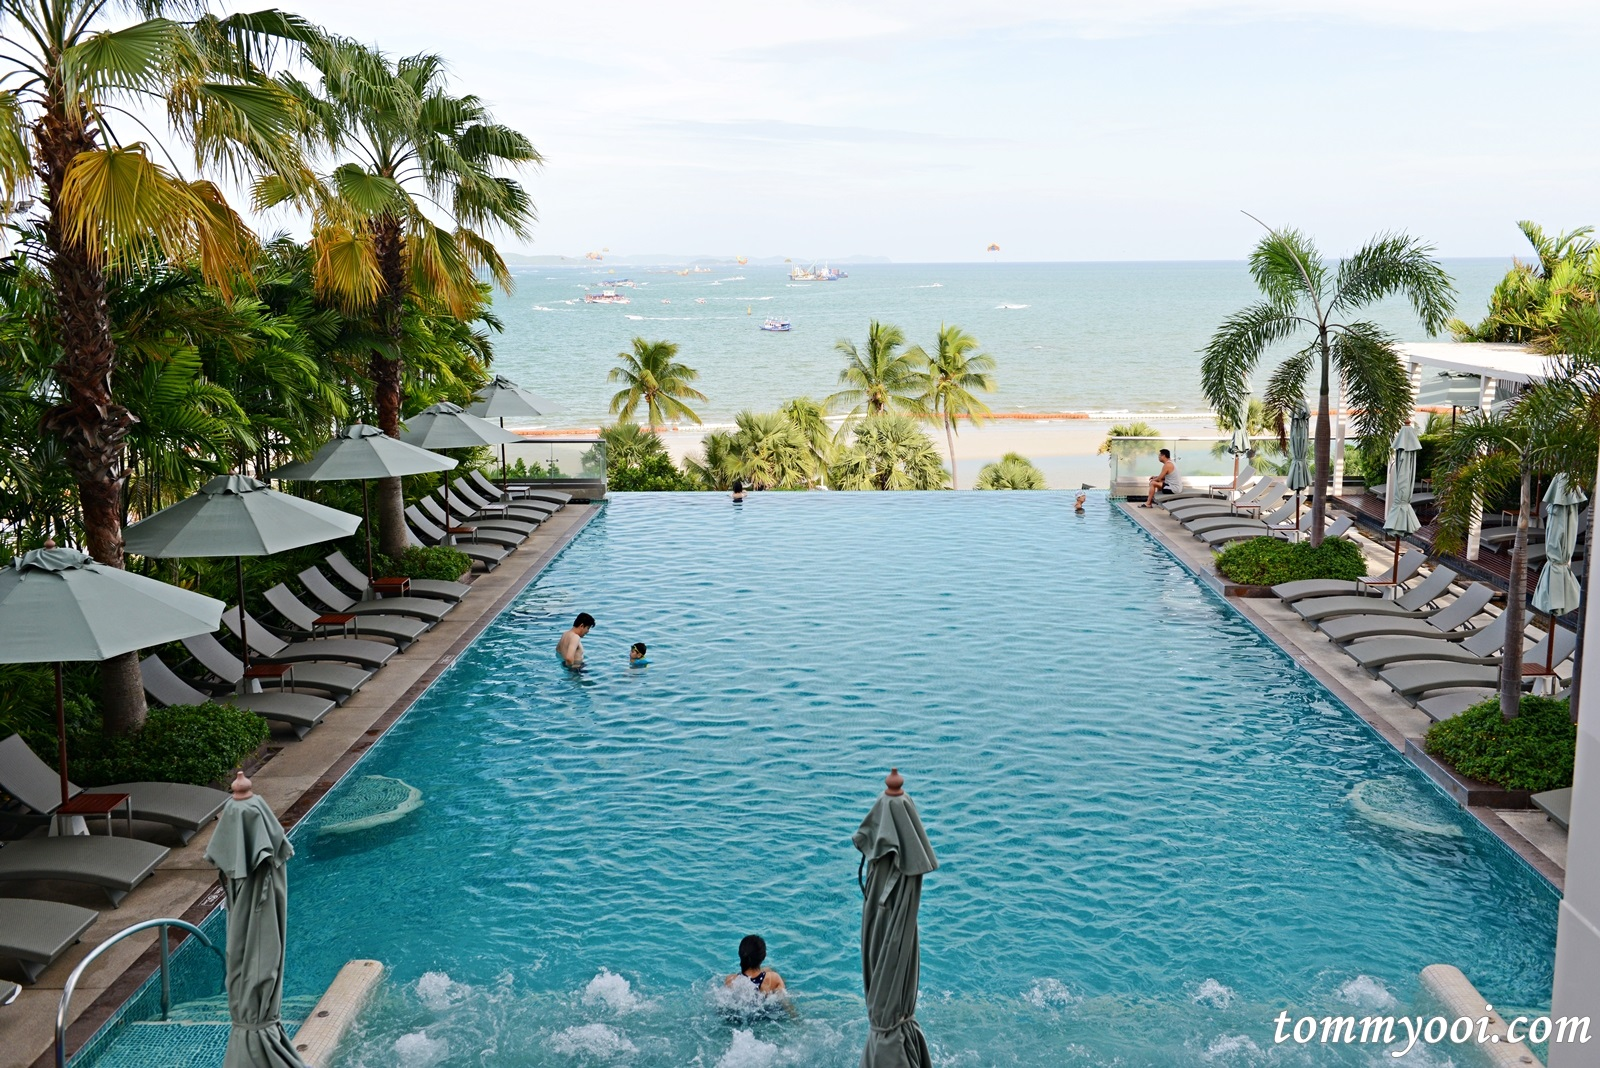 Holiday Inn Pattaya Executive Tower - Tommy Ooi Travel Guide